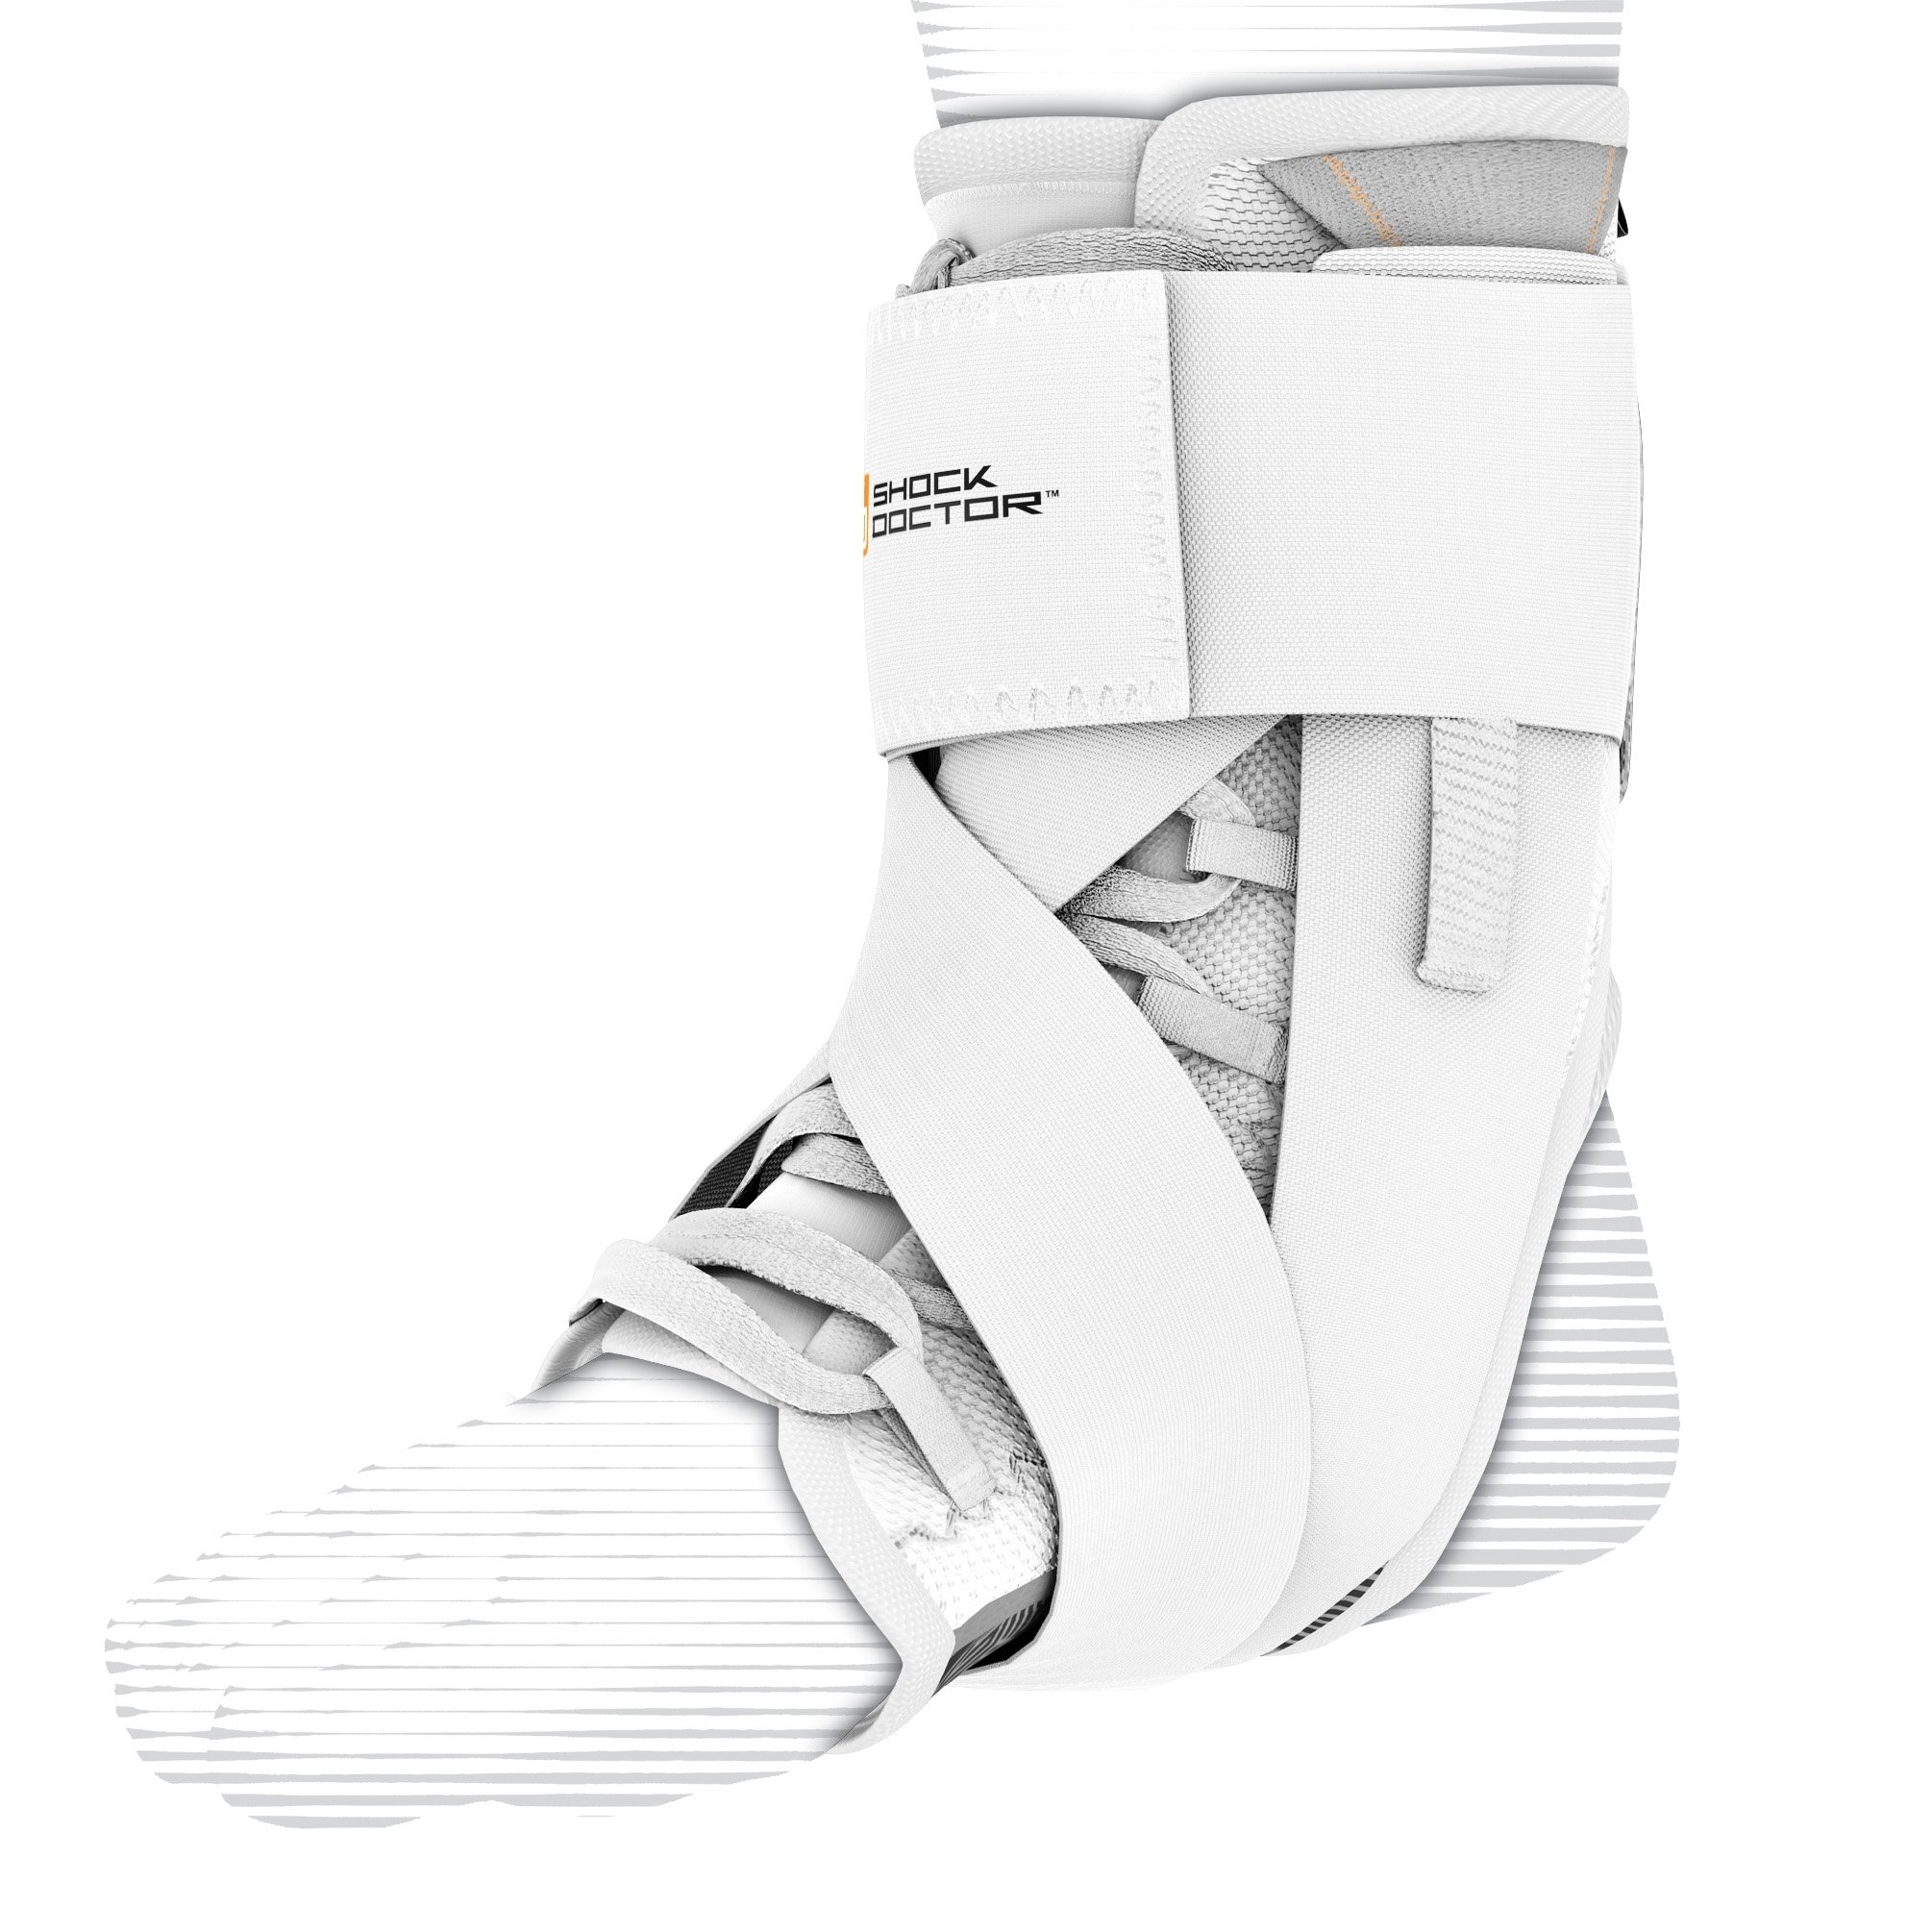 Shock Doctor 851 Ultra Wrap Laced Ankle Brace, White, Medium by Shock Doctor